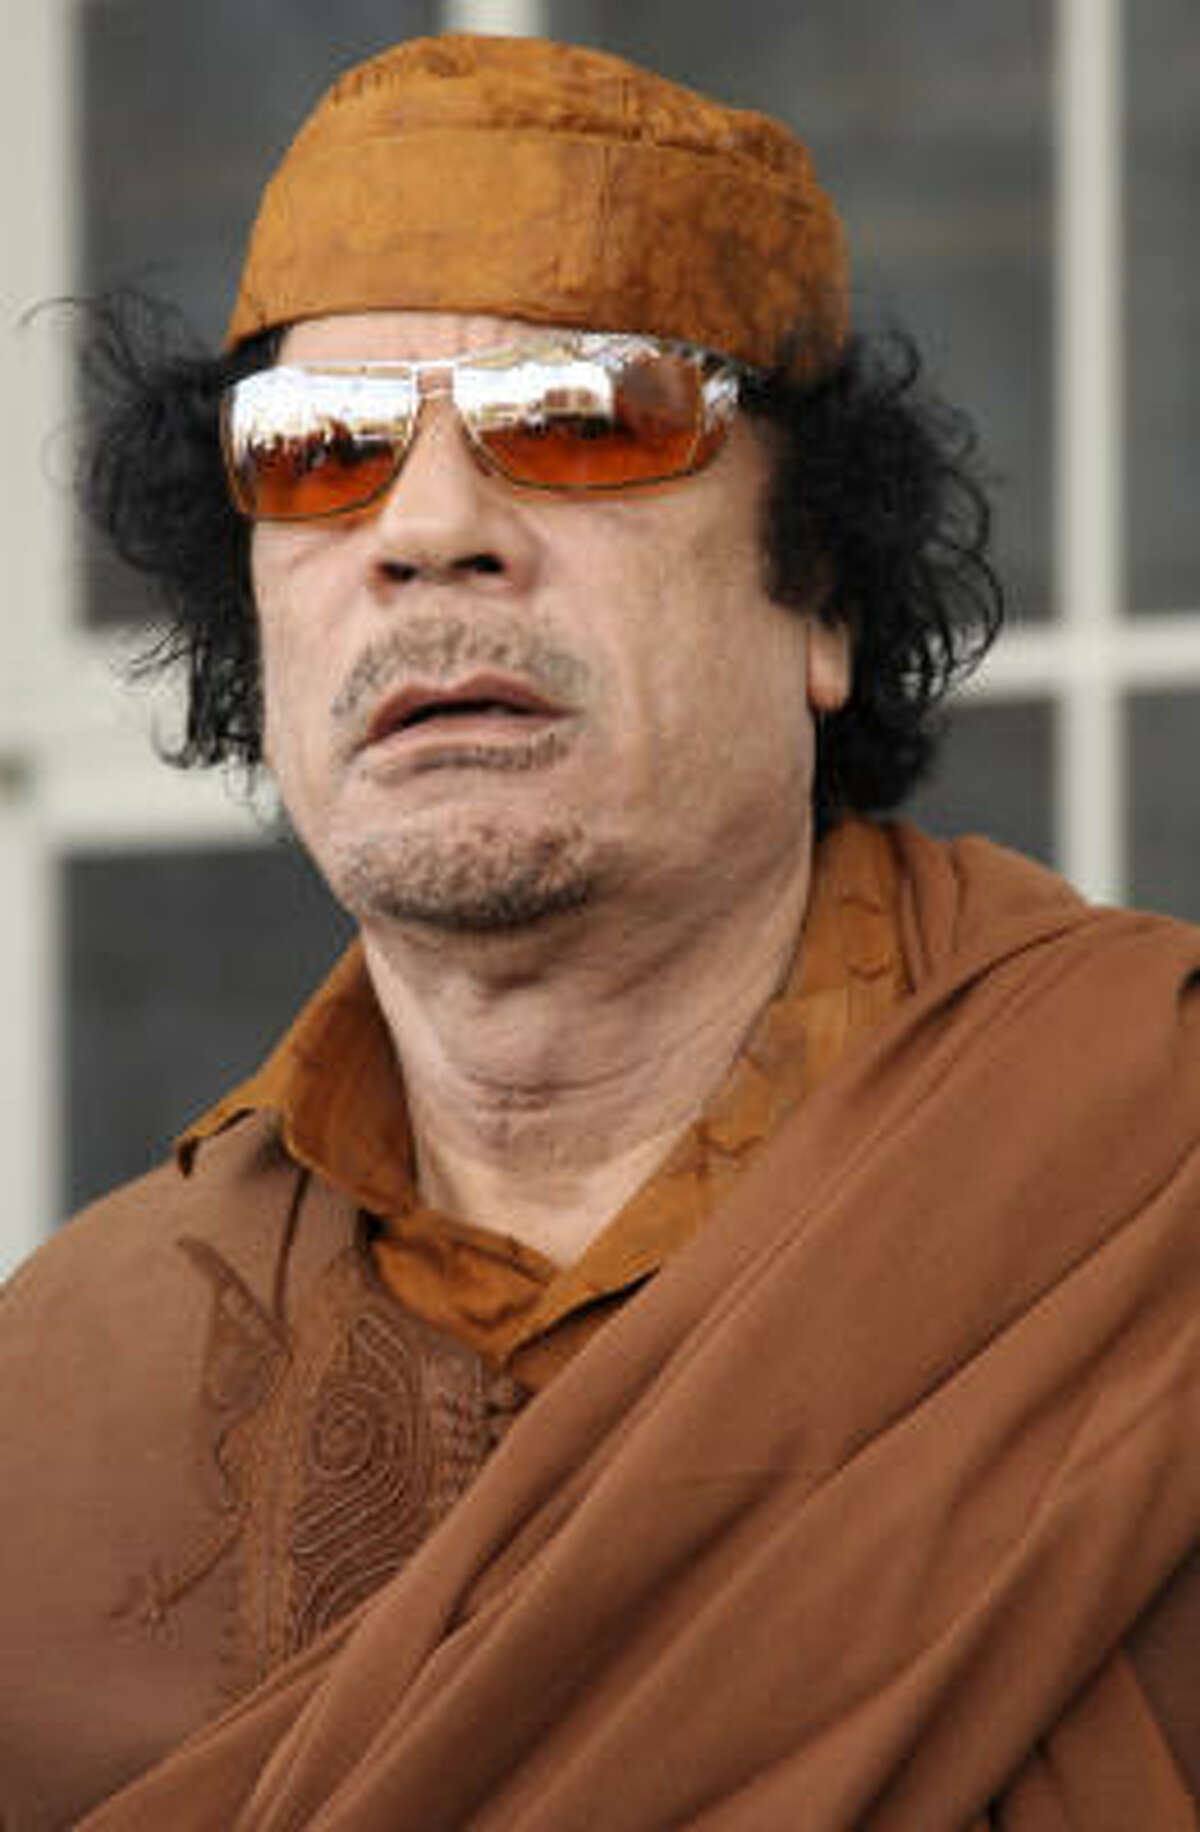 As head of the African Union, Libyan leader Moammar Gadhafi will have the power to guide policy across Africa.